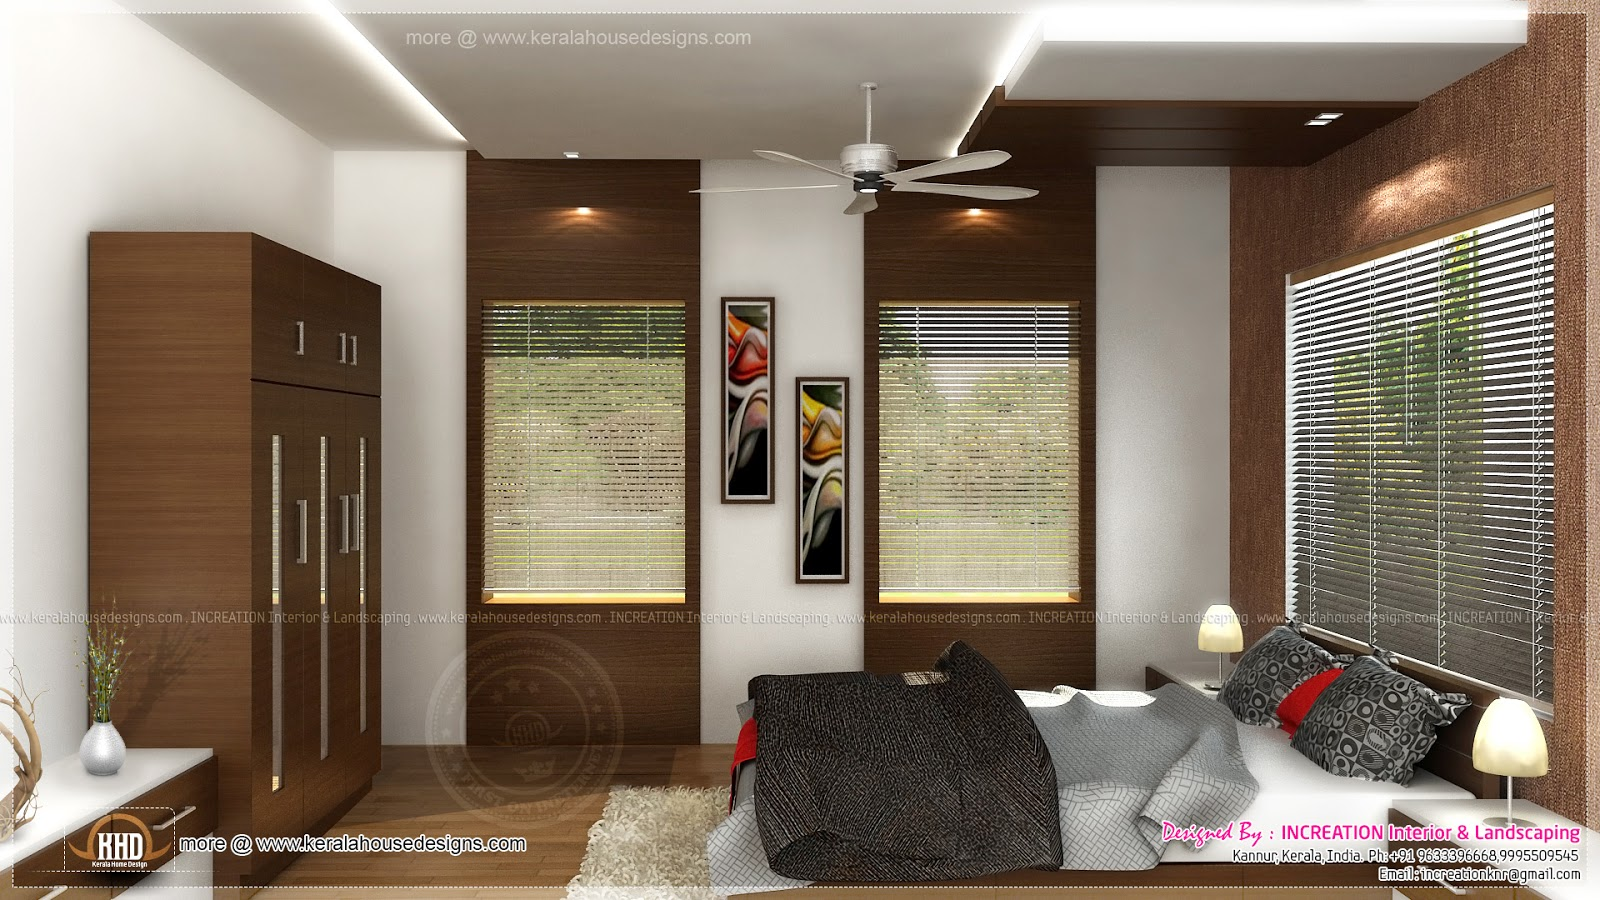 Interior designs from kannur kerala kerala home design for Kerala house living room interior design